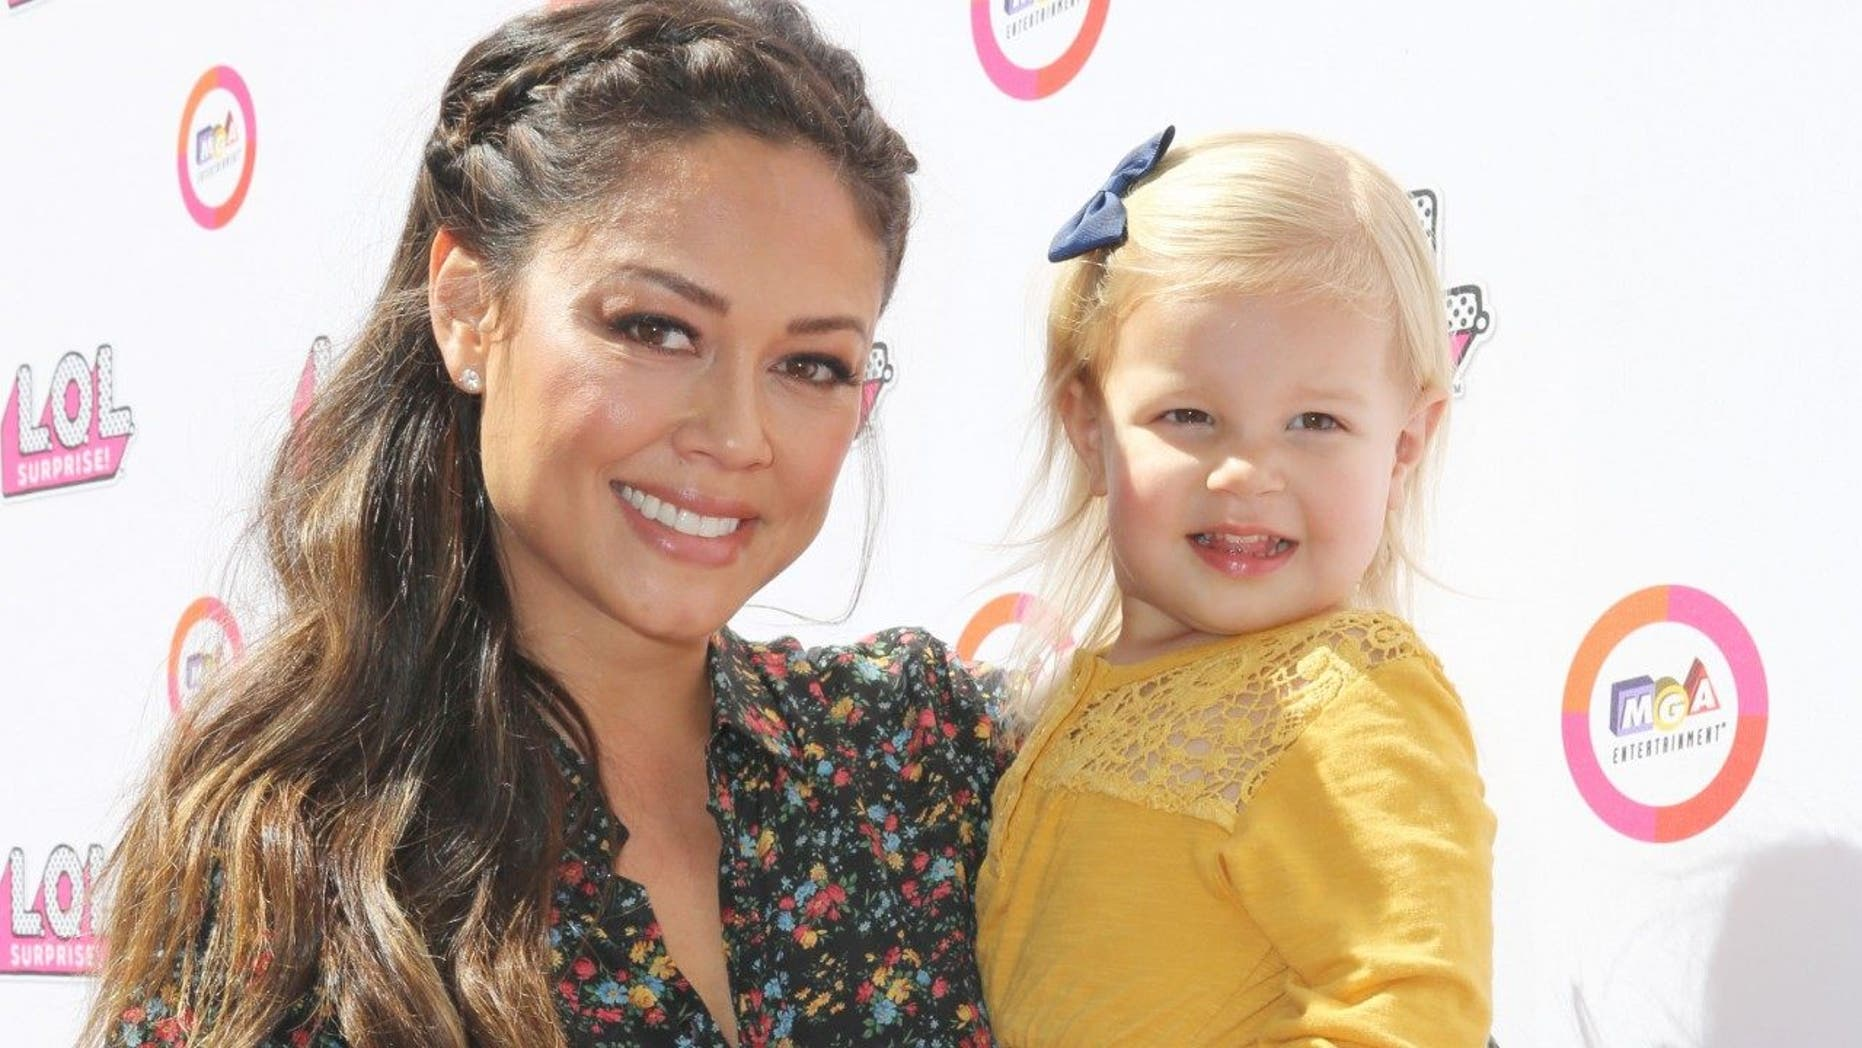 d6be5109871ed Vanessa Lachey responded to a tweet that said her 3-year-old daughter,